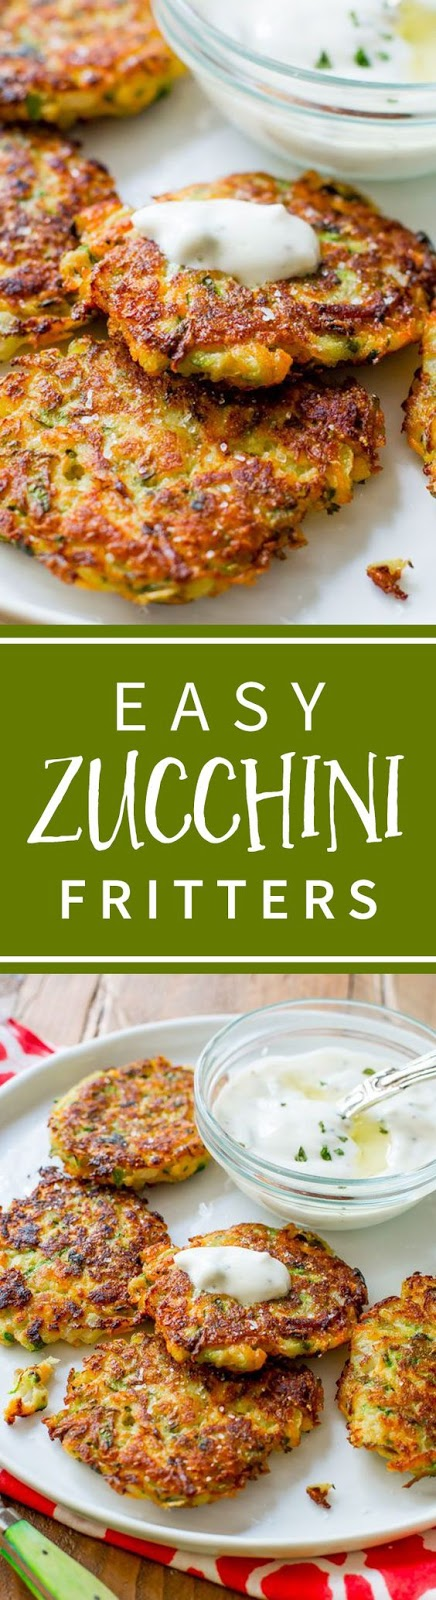 Zucchini Fritters with Garlic Herb Yogurt Sauce